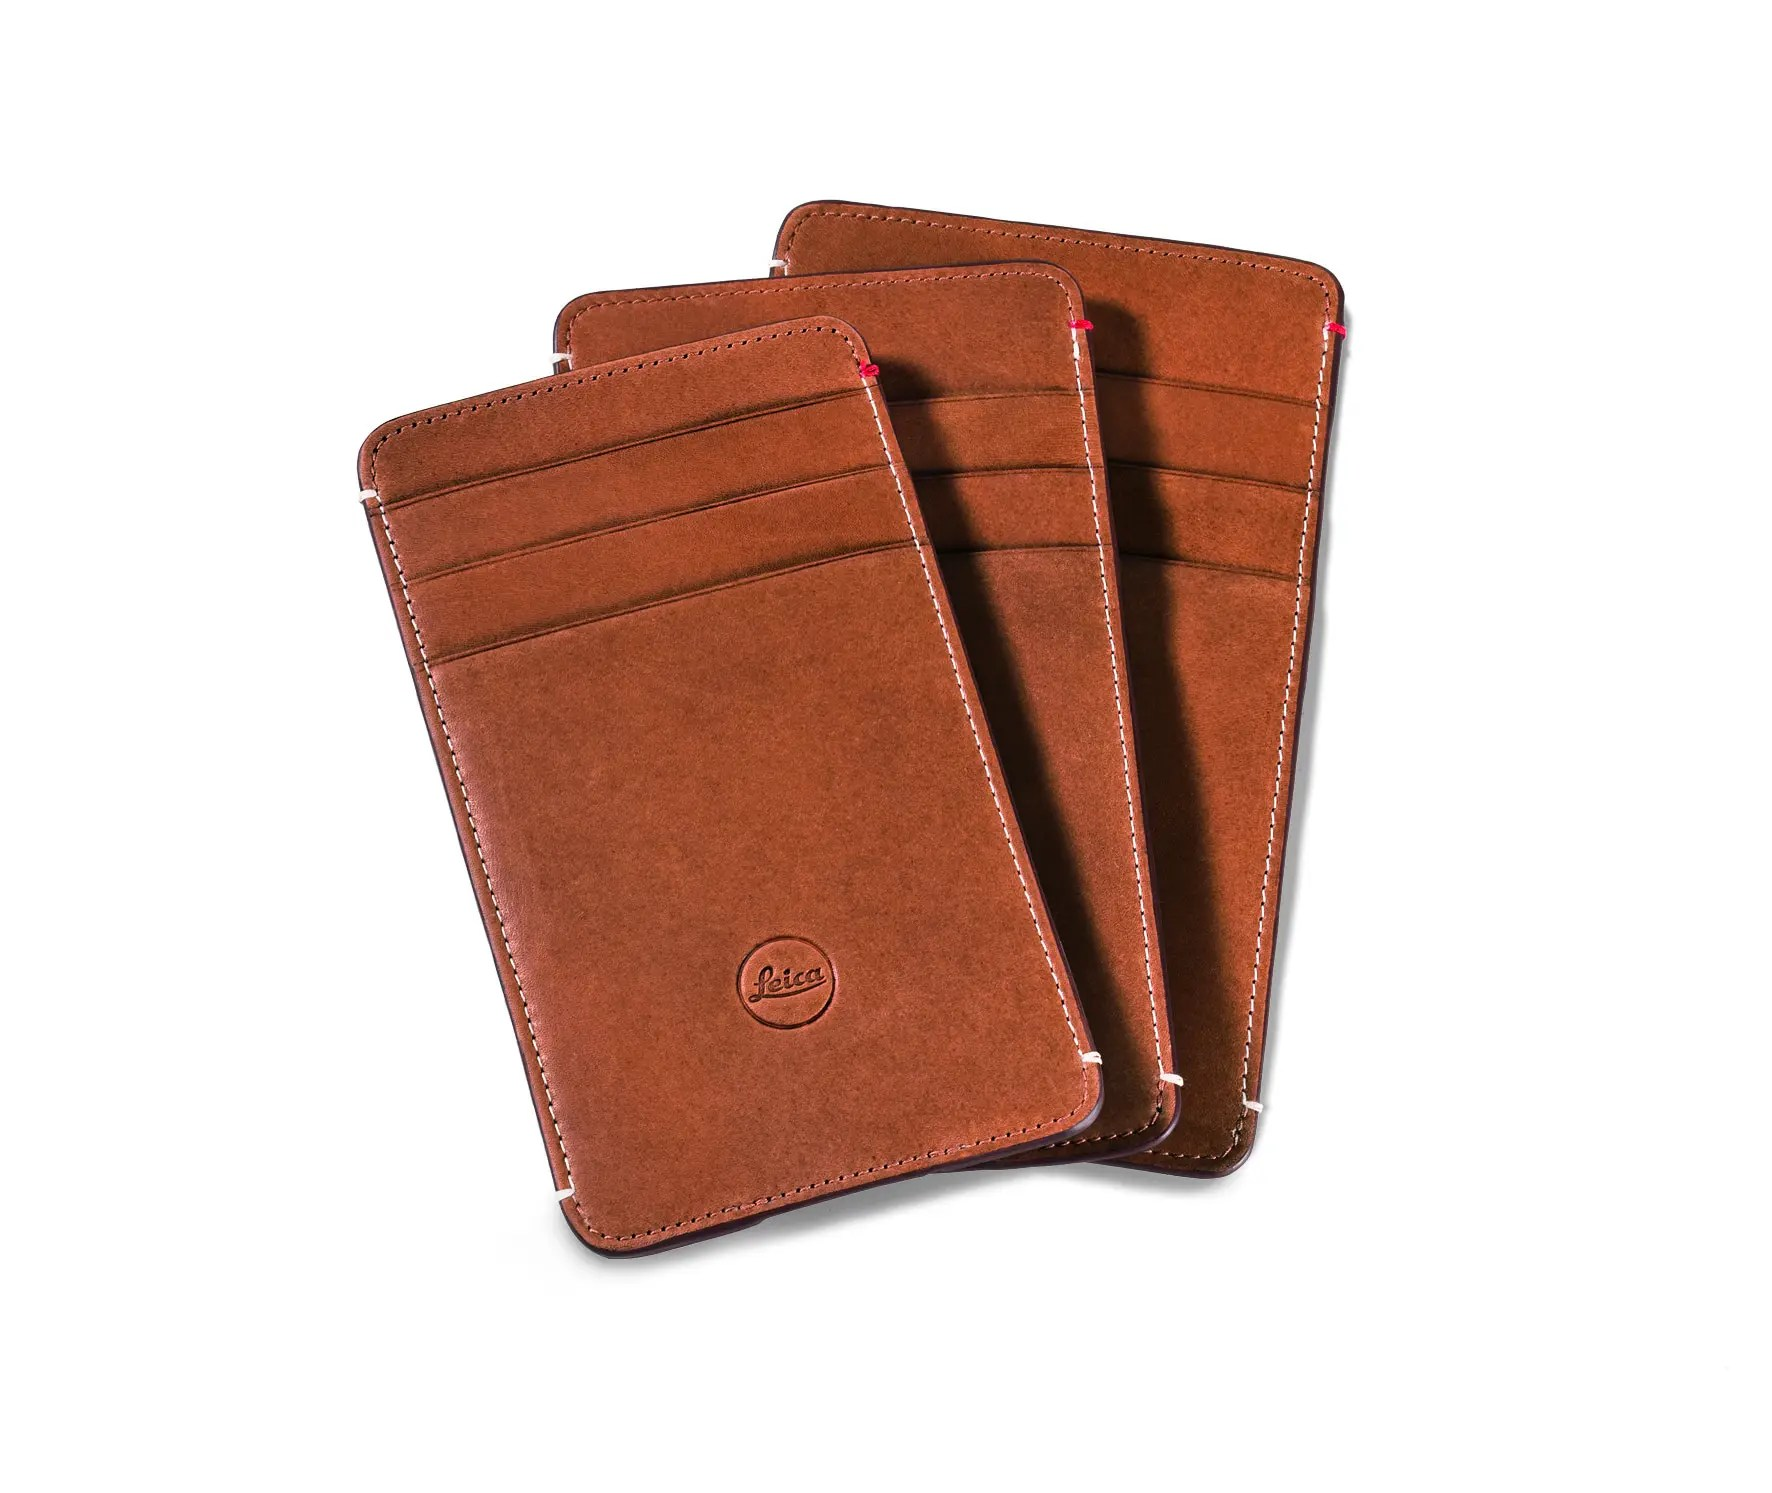 Leica Leather Smartphone Cases.jpg